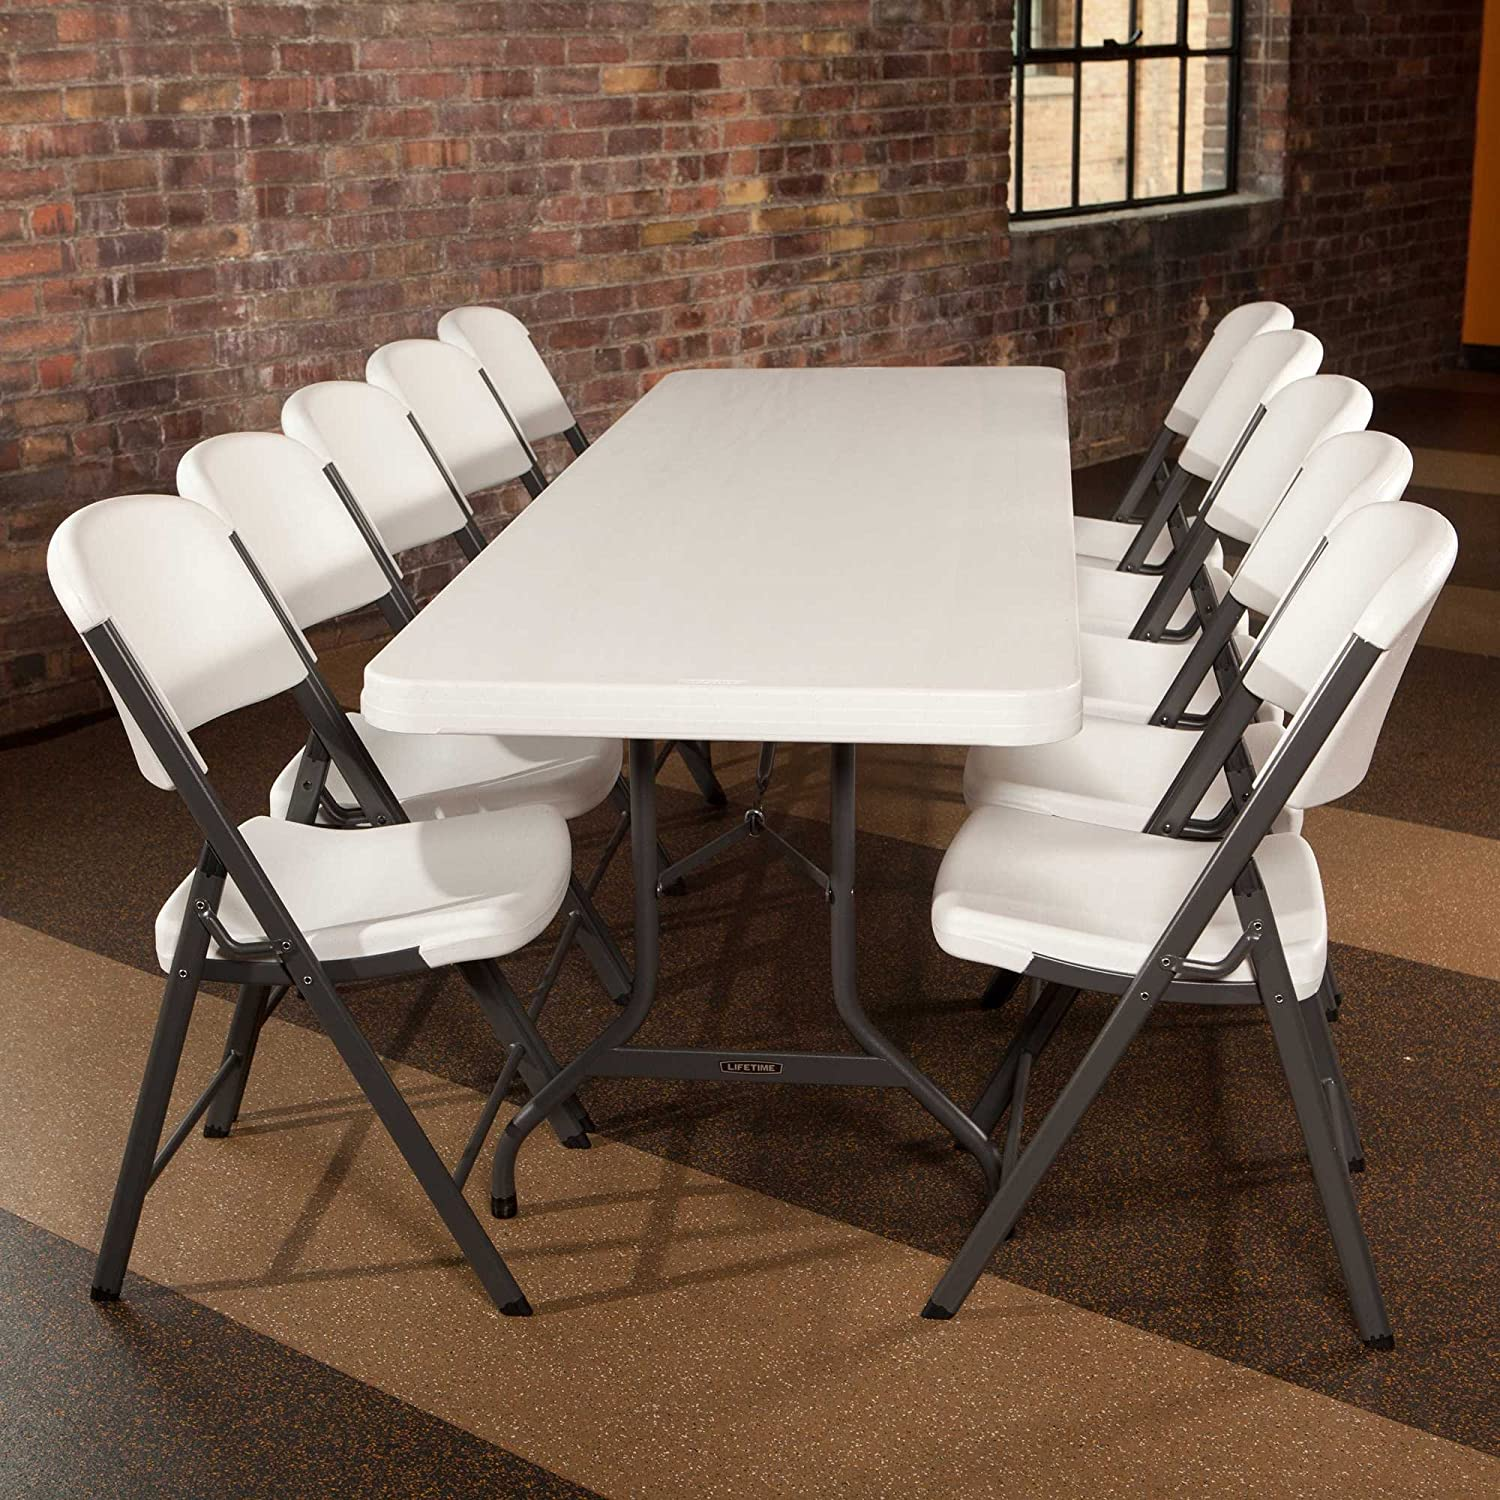 Amazon Lifetime Utility Table Pack of 4 Tables Patio Lawn